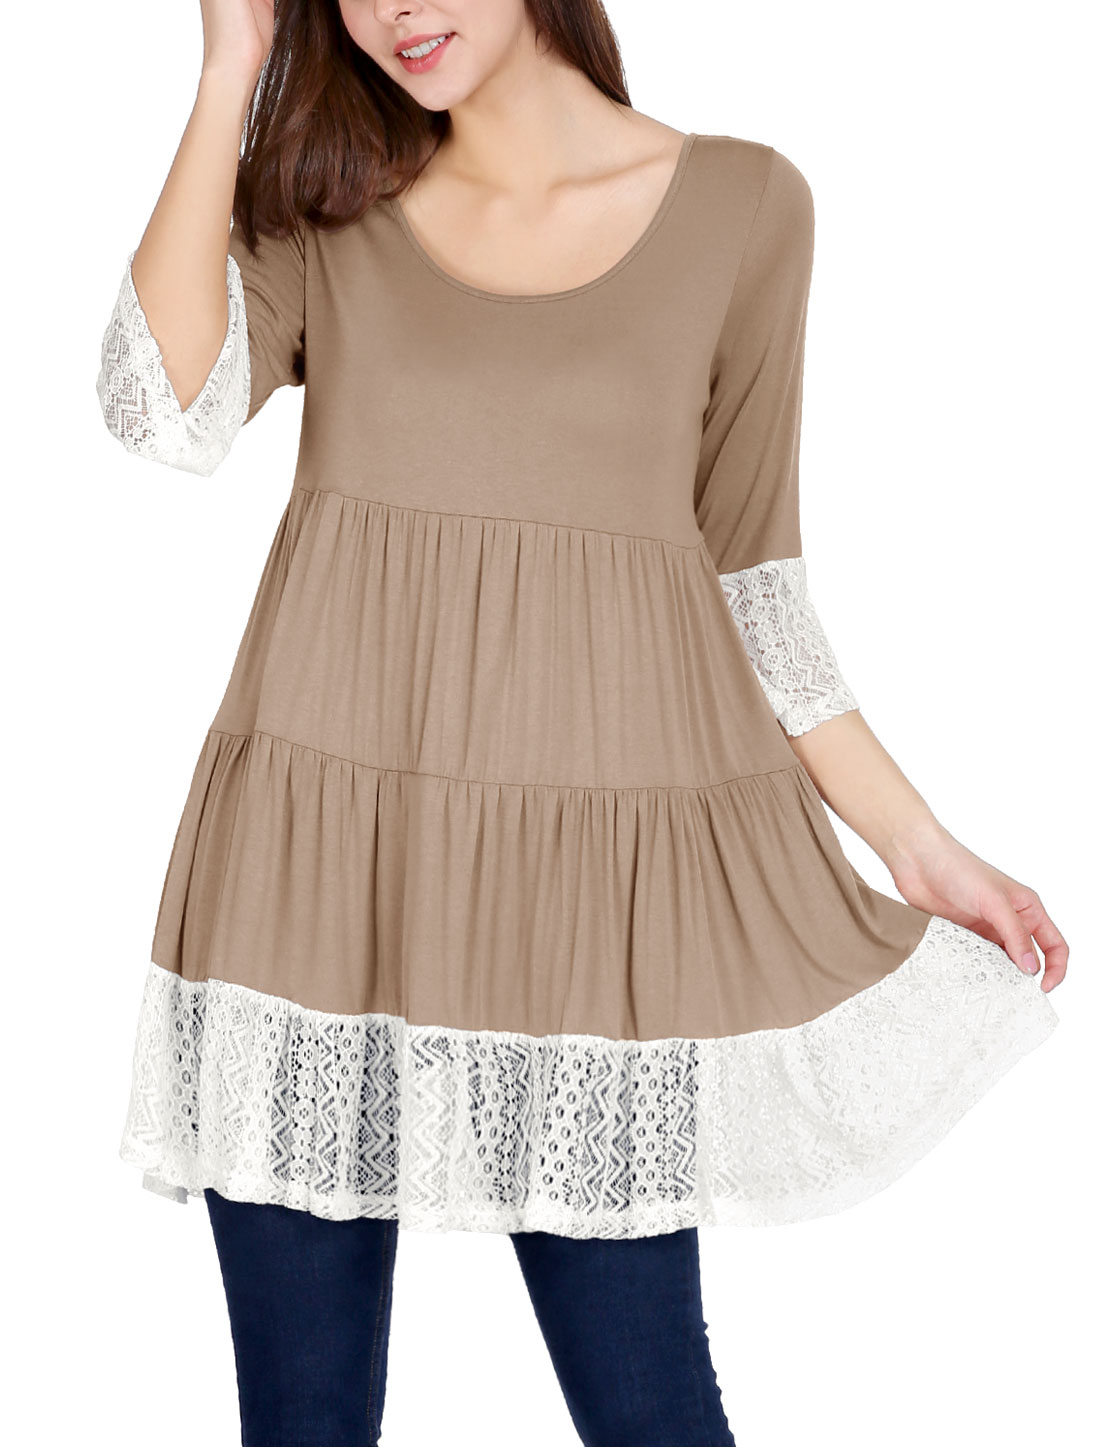 Women Trumpet Sleeves Lace Panel Ruffle Hem Loose Tiered Tunic Top Brown XL